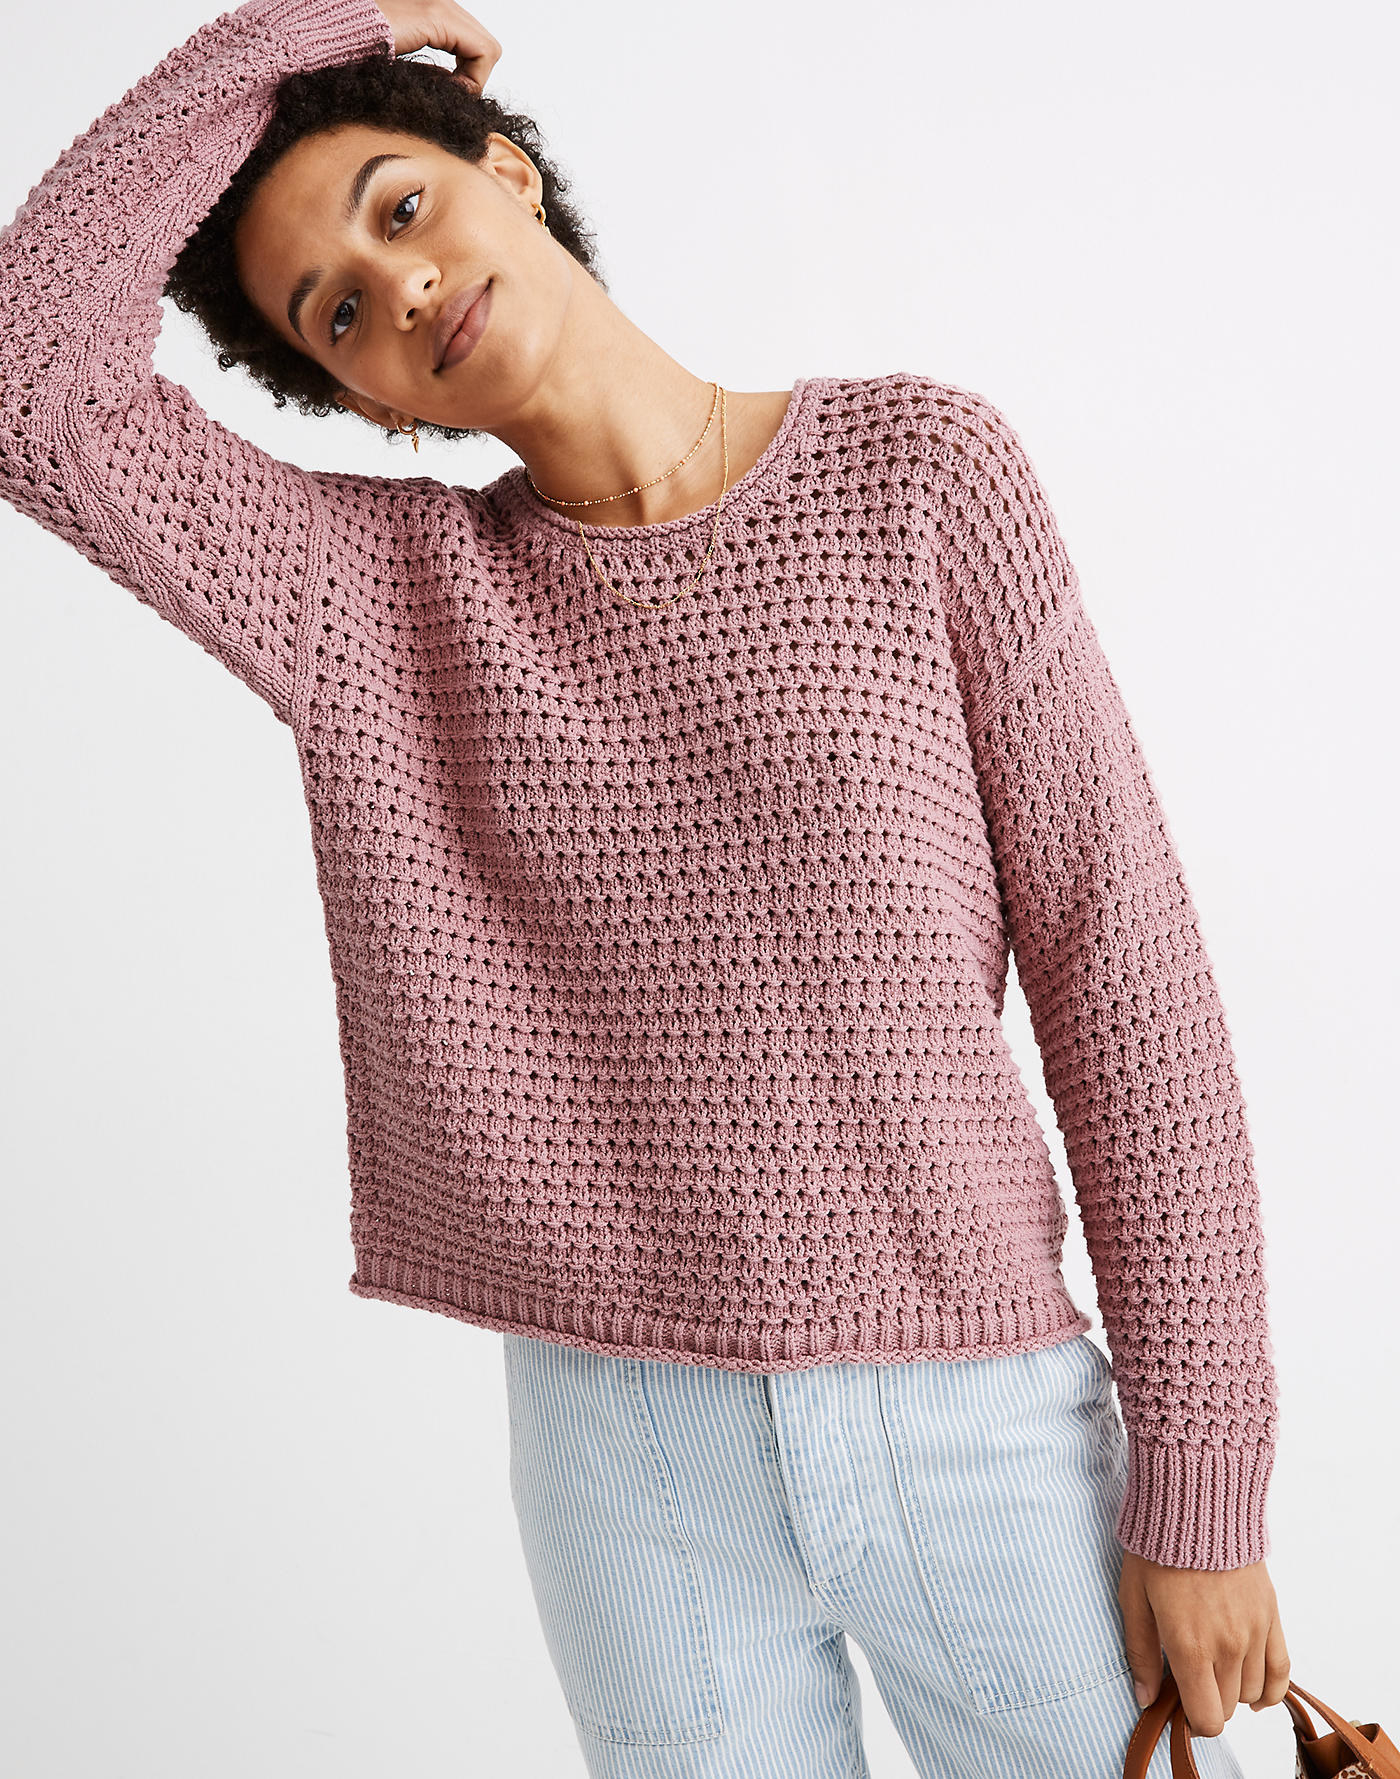 Model wearing the sweater with a rolled neck and hem in pink